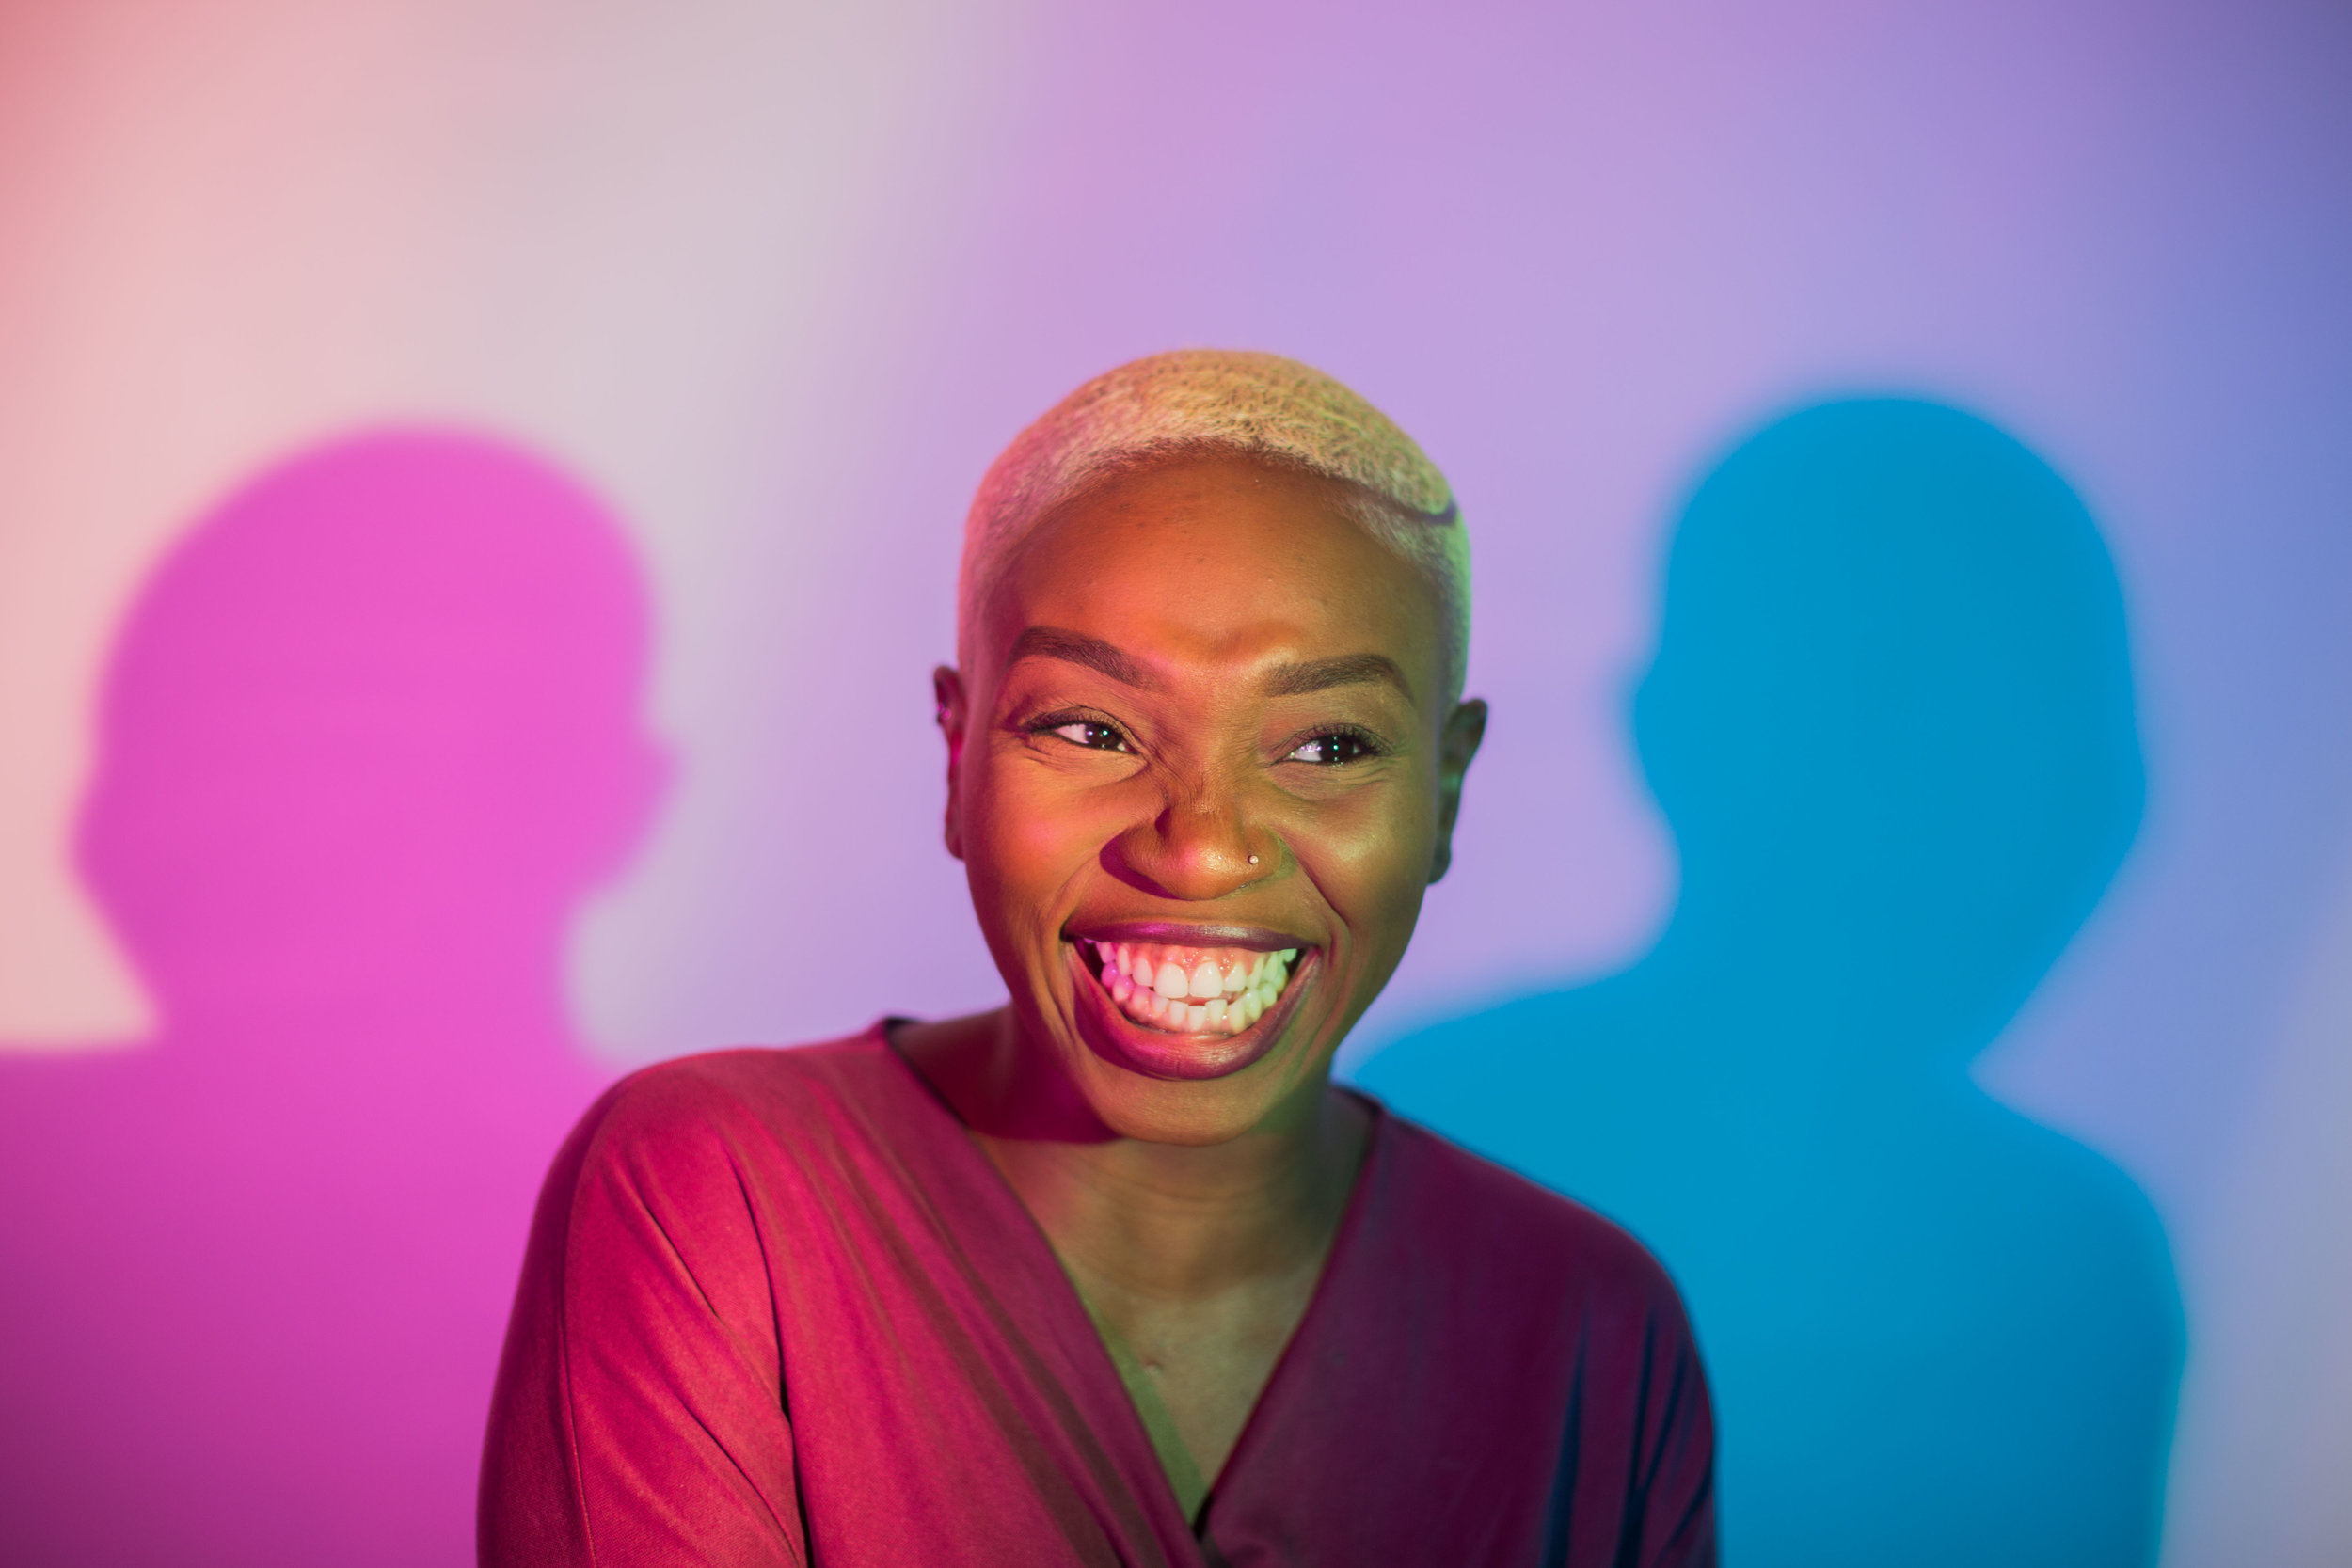 Meet Ruth Sutoyé - London-based poet, facilitator, creative producer, visual artist and visionary behind short film 'Reign'.